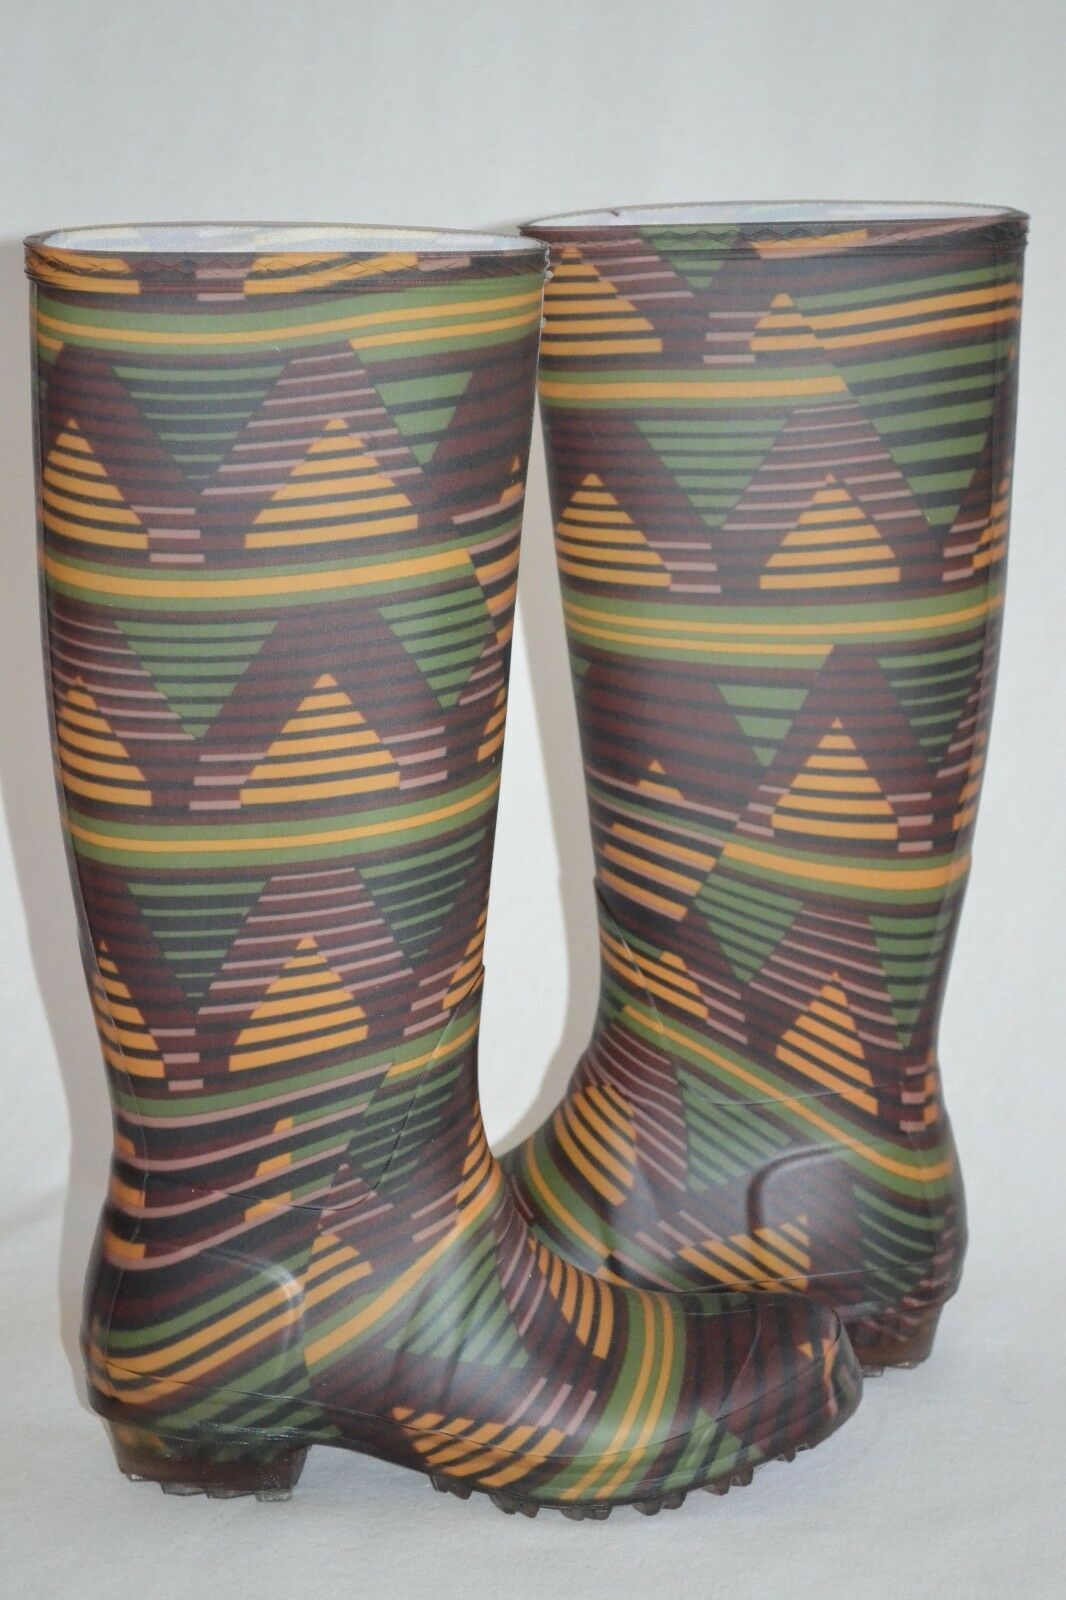 NEW M MISSONI WOMENS ZIGZAG RAIN RUBBER BOOTS SZ 10 - EU40 MADE IN ITALY